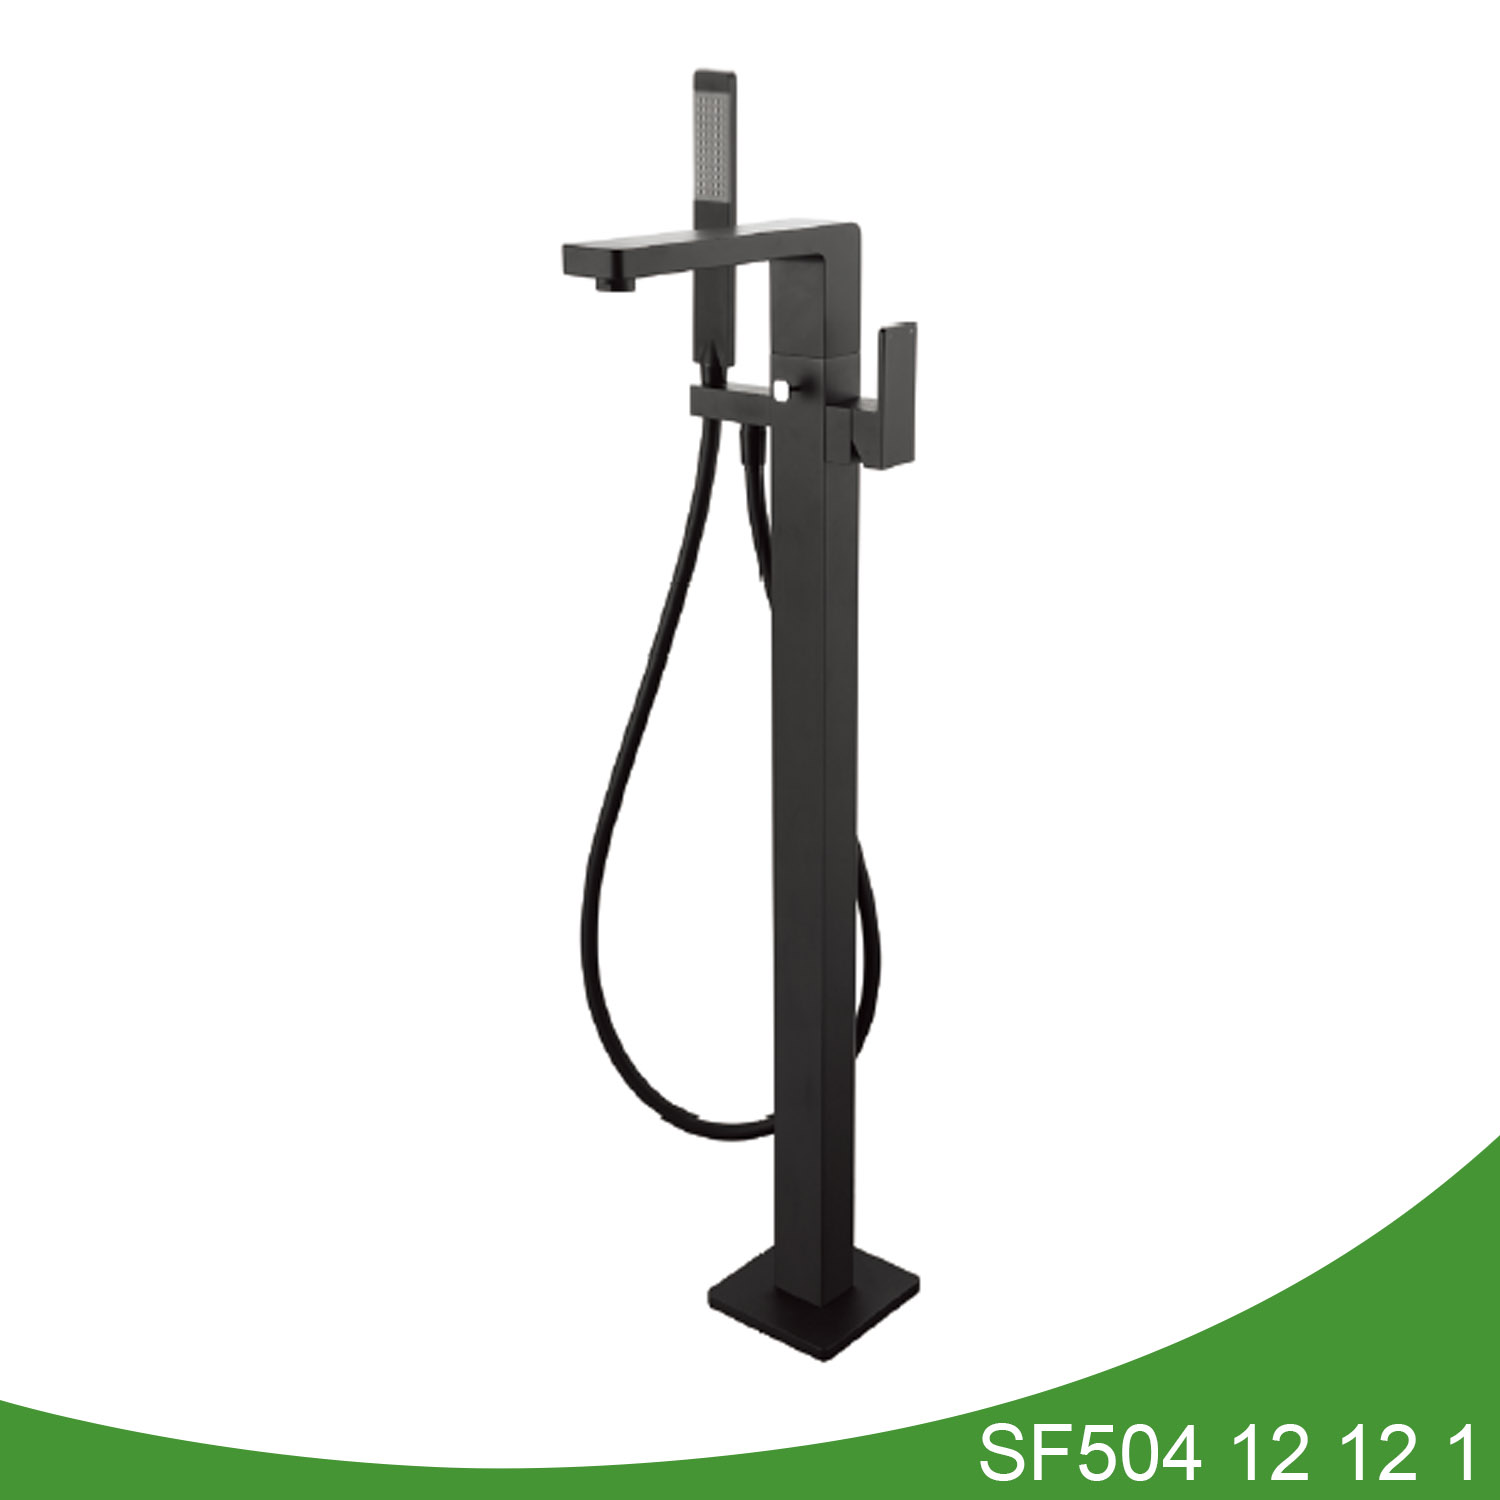 Freestanding bathtub faucet with hand shower SF504 12 01 1